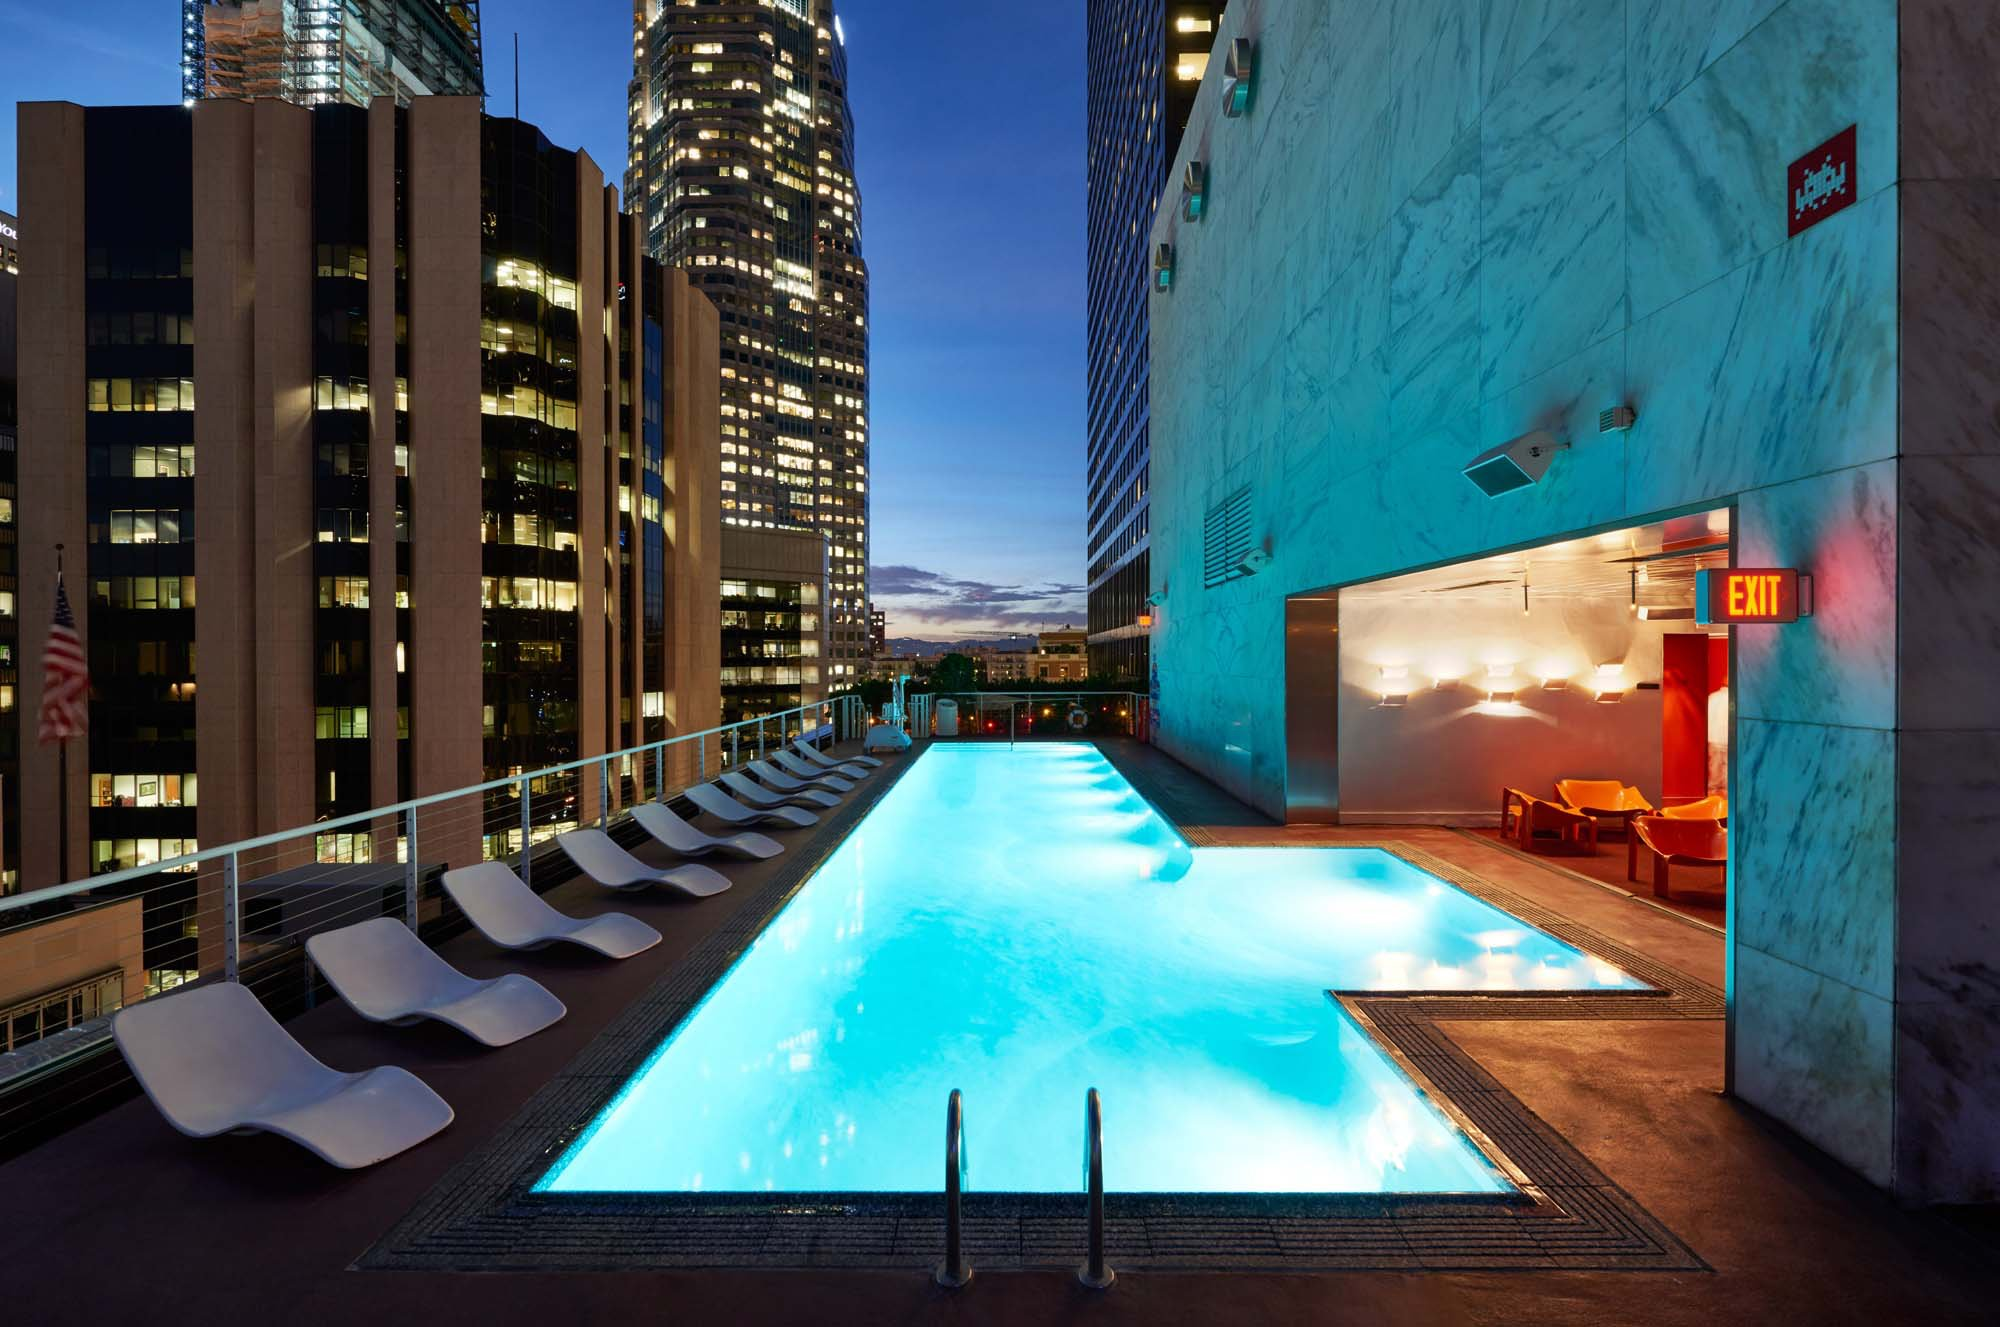 The 20 best pools in la vegas miami new york zocha group - Best hotel swimming pools in california ...